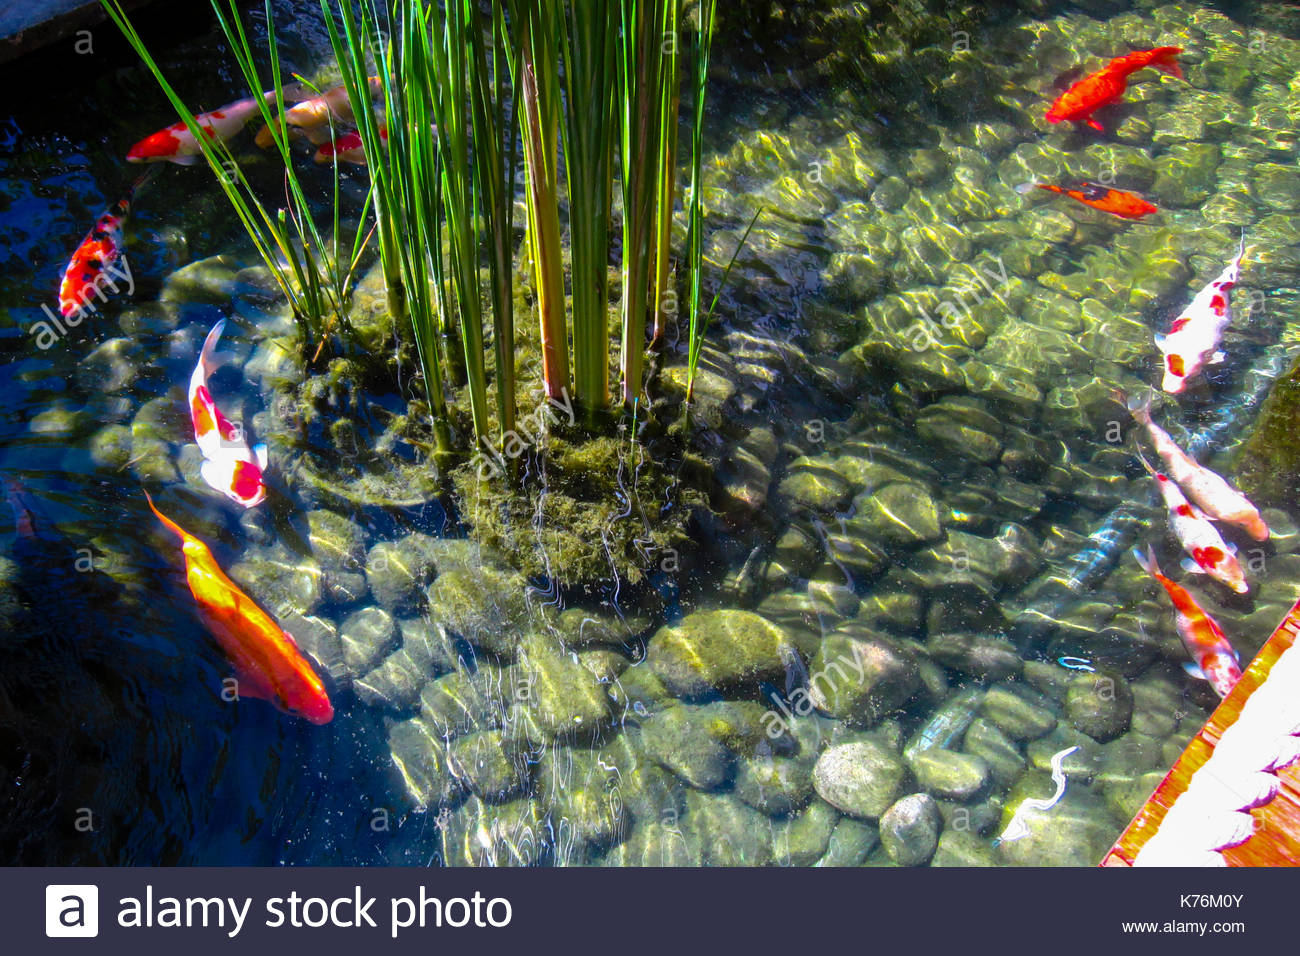 Landscaping text for Koi fish information